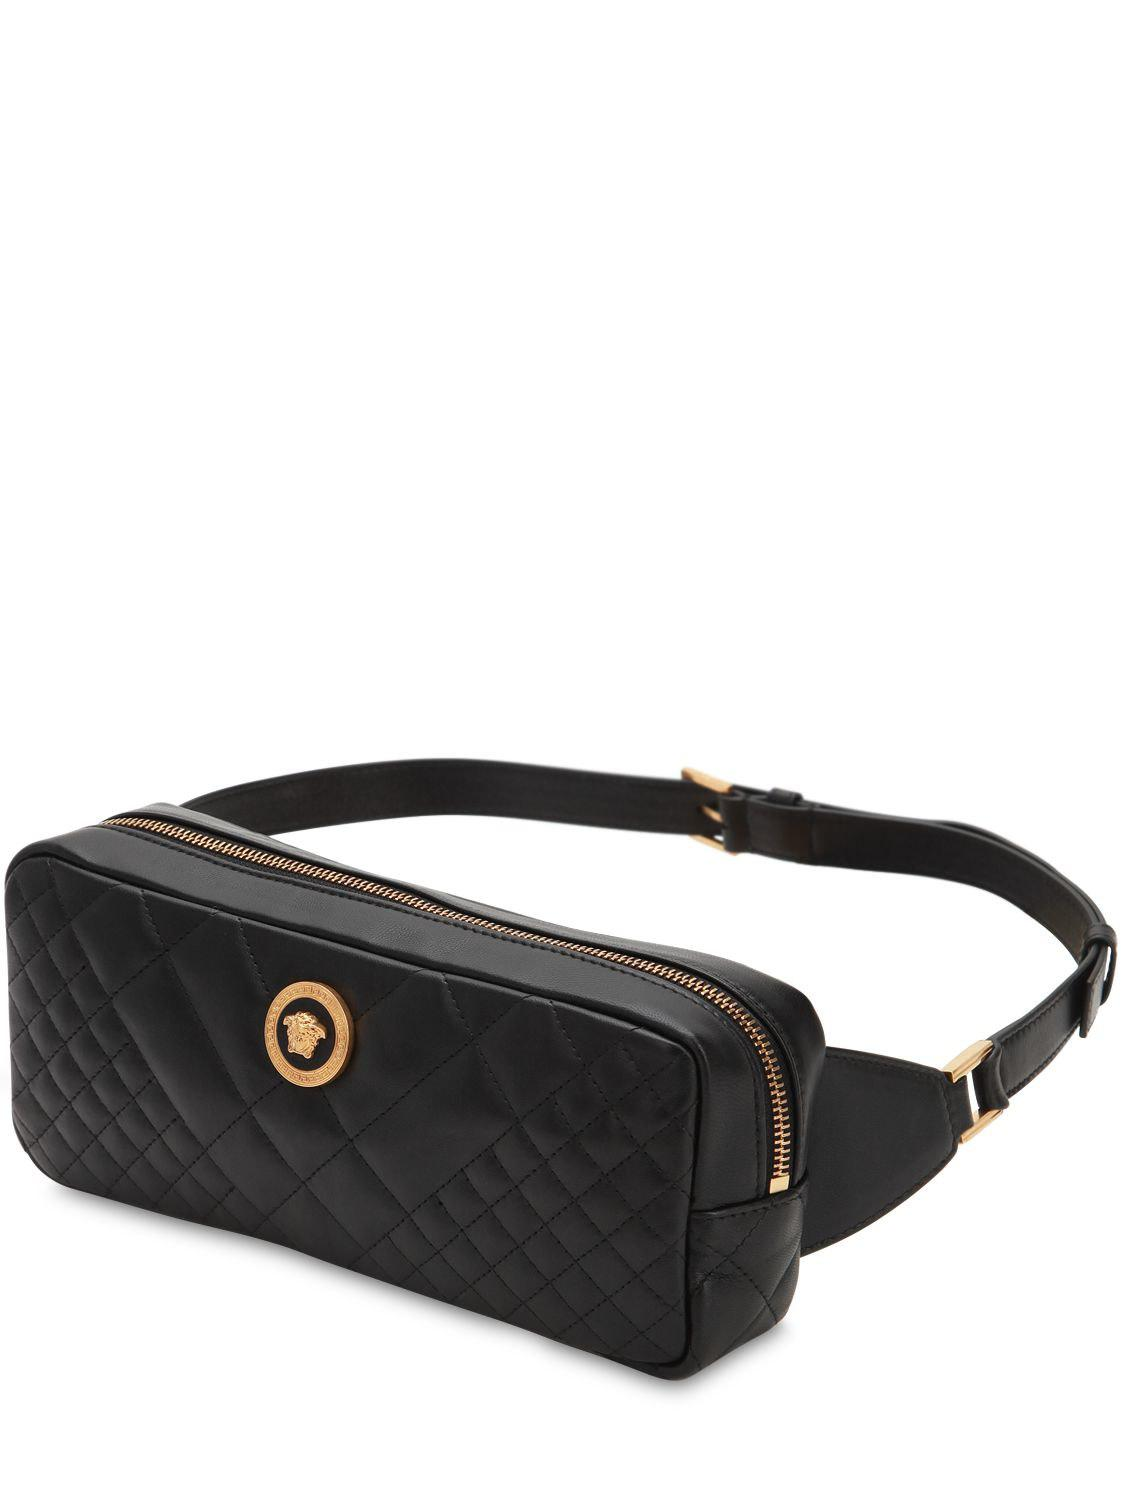 5fef2144e1 Versace Icon Quilted Leather Belt Bag in Black - Lyst